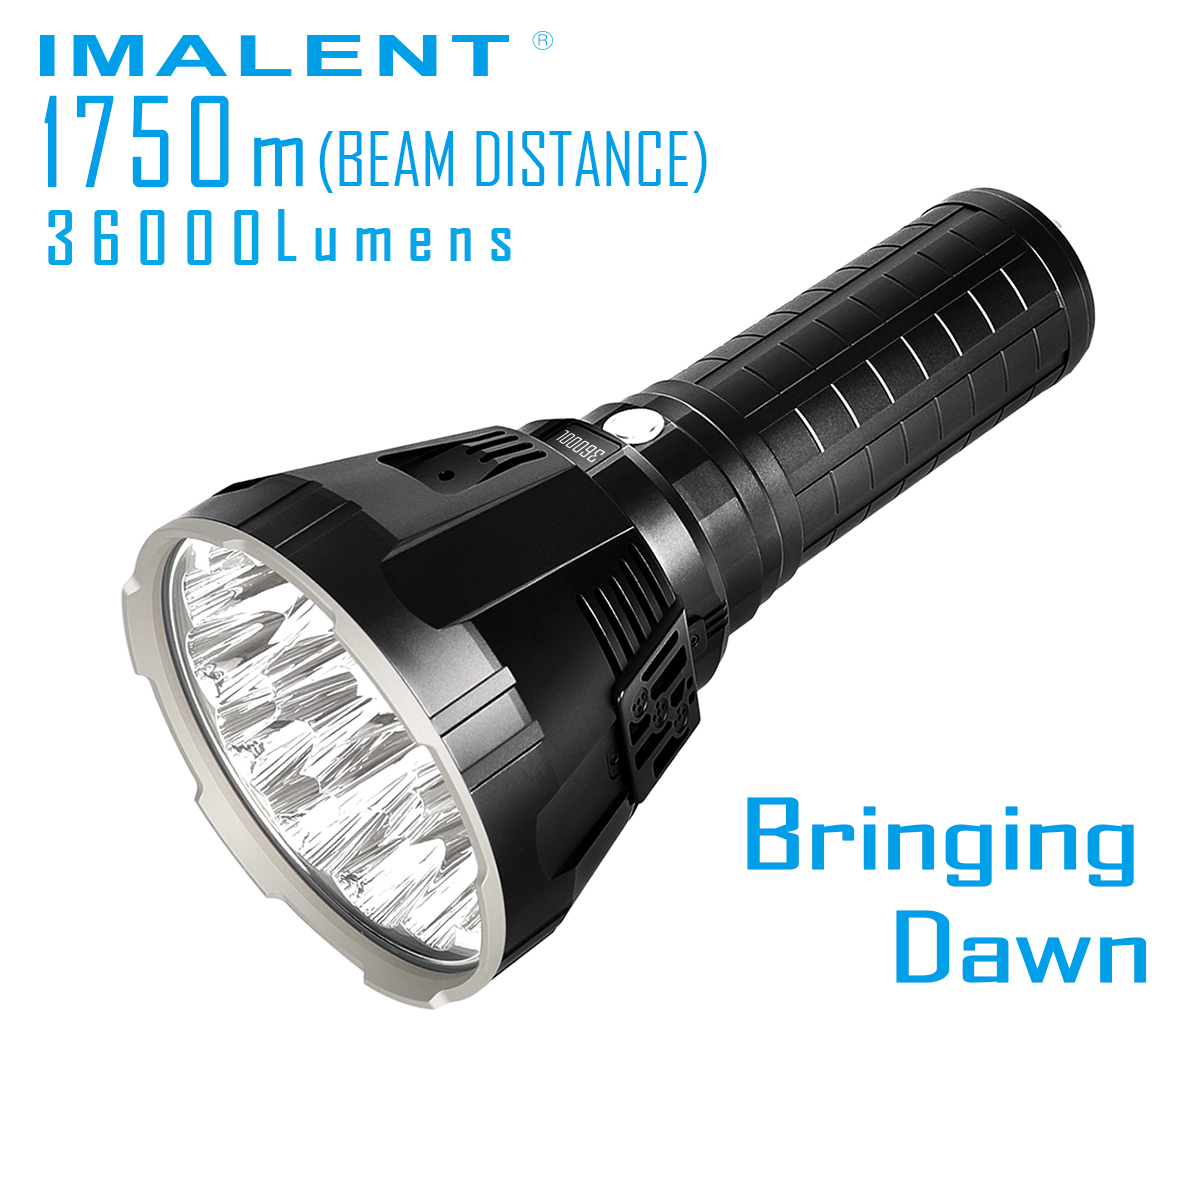 Handheld Flashlight Imalent R90ts XHP35 Battery-Pack Beam Distance Lumens Hi-Max CREE